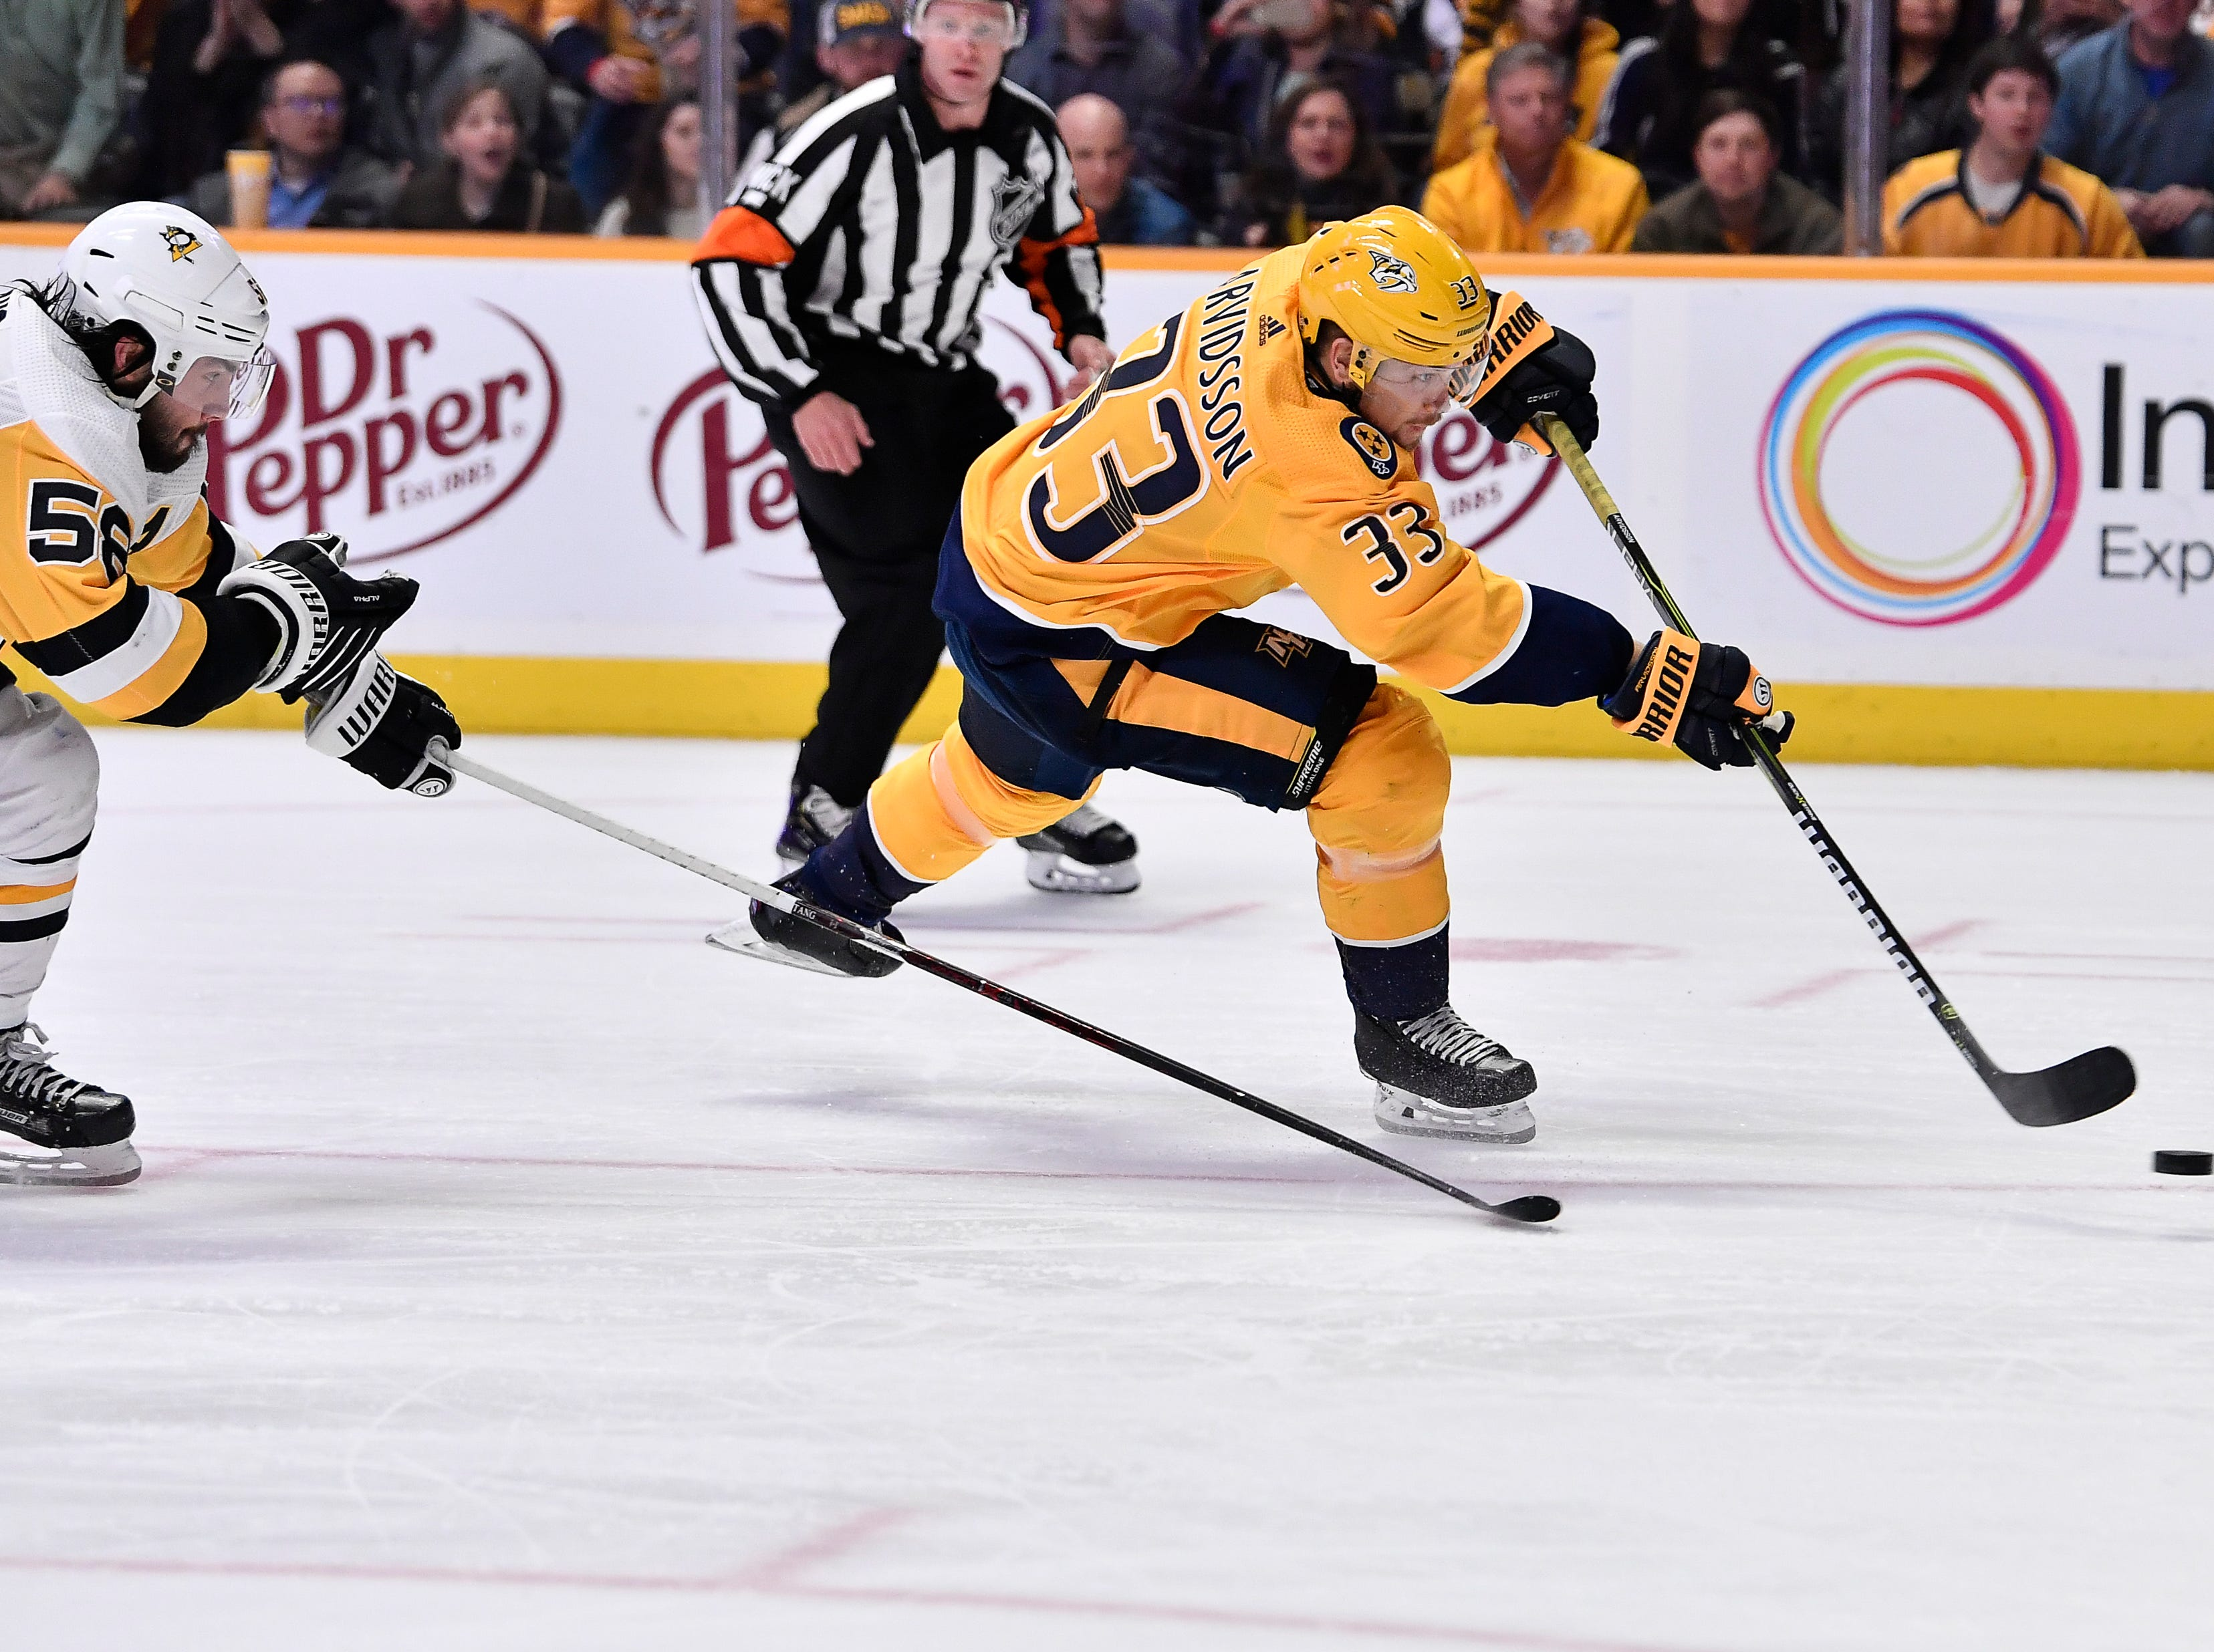 Predators right wing Viktor Arvidsson (33) shoots the puck past Penguins defenseman Kris Letang (58) during the third period at Bridgestone Arena Thursday, March 21, 2019 in Nashville, Tenn.